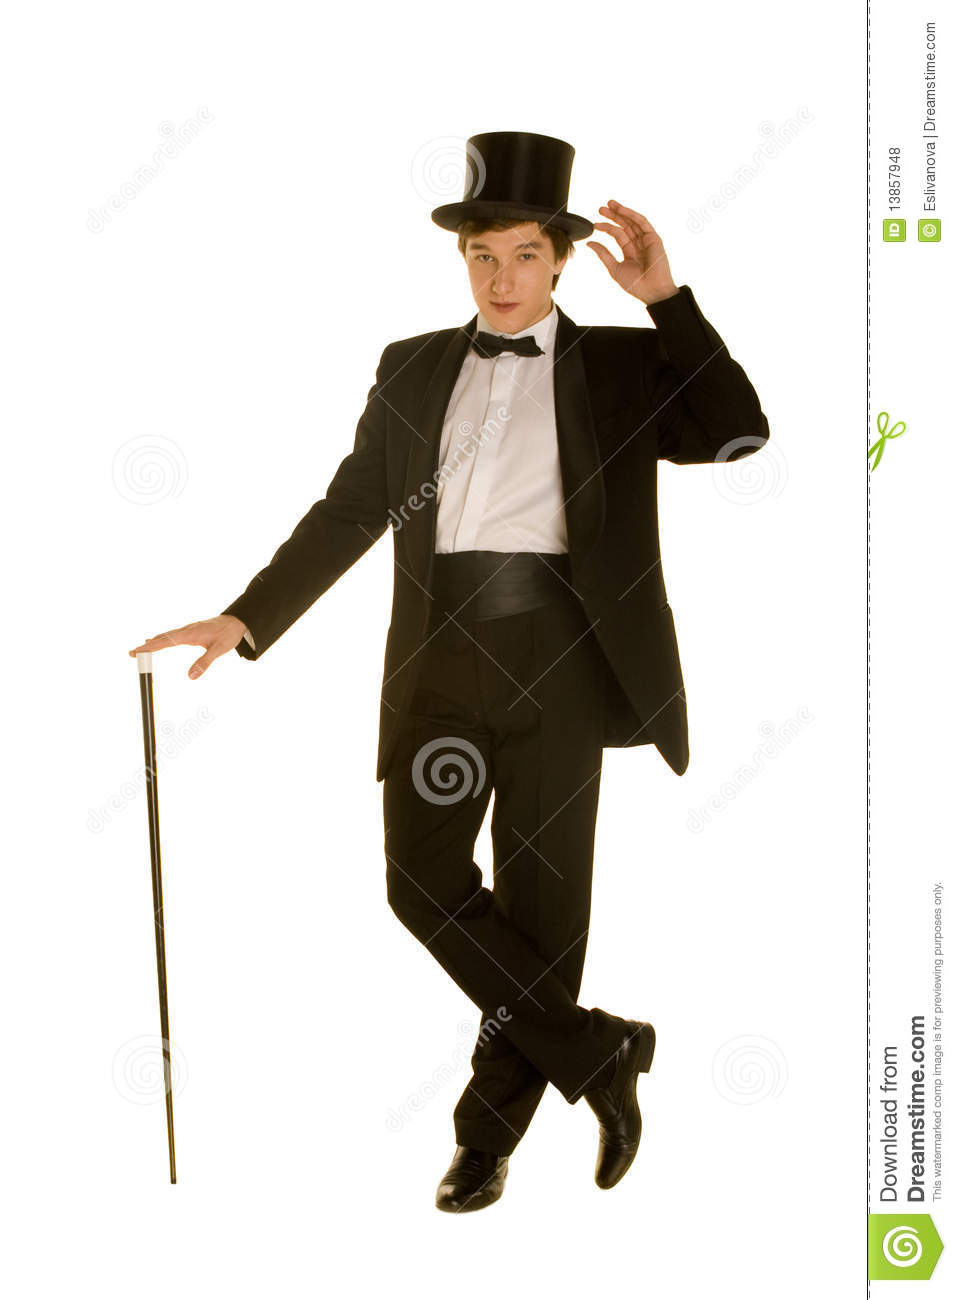 Top Hat And Cane Clipart - Clipart Kid